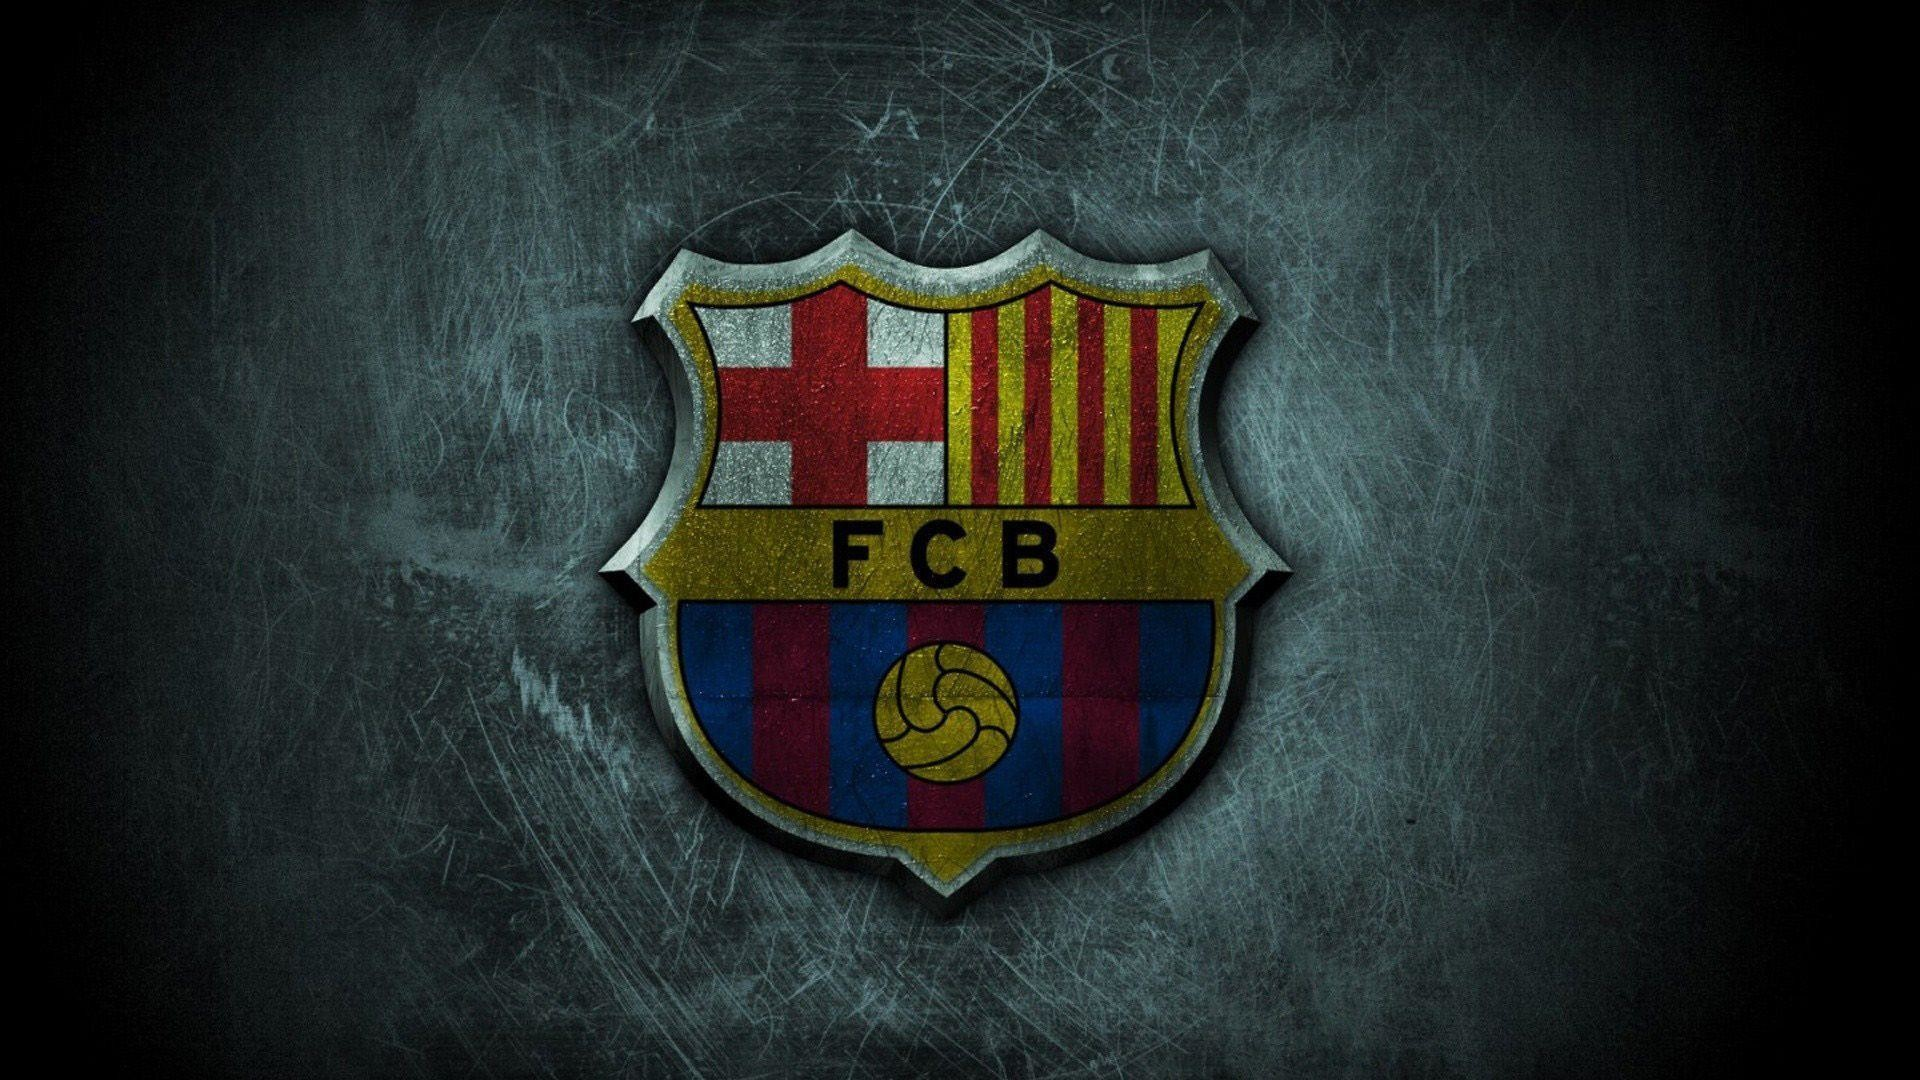 1920x1080 FC Barcelona Wallpapers 2015 - Wallpaper Cave